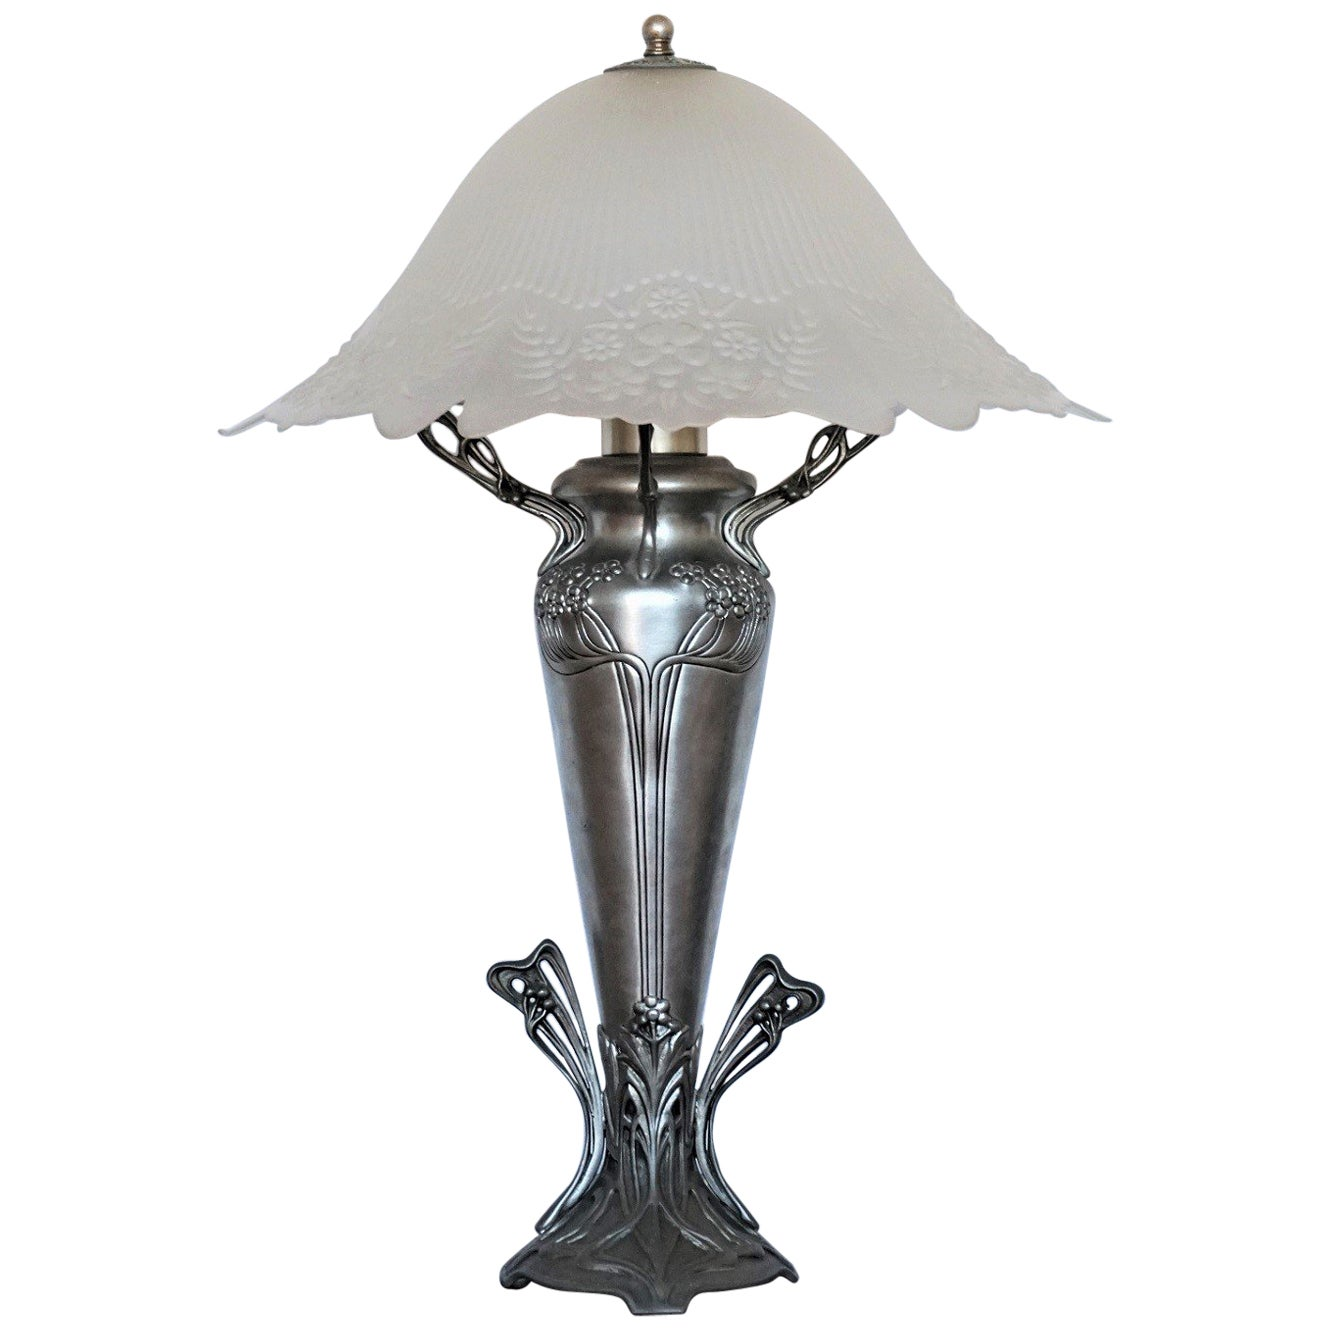 French Art Deco Vase Table Lamp, 1930s